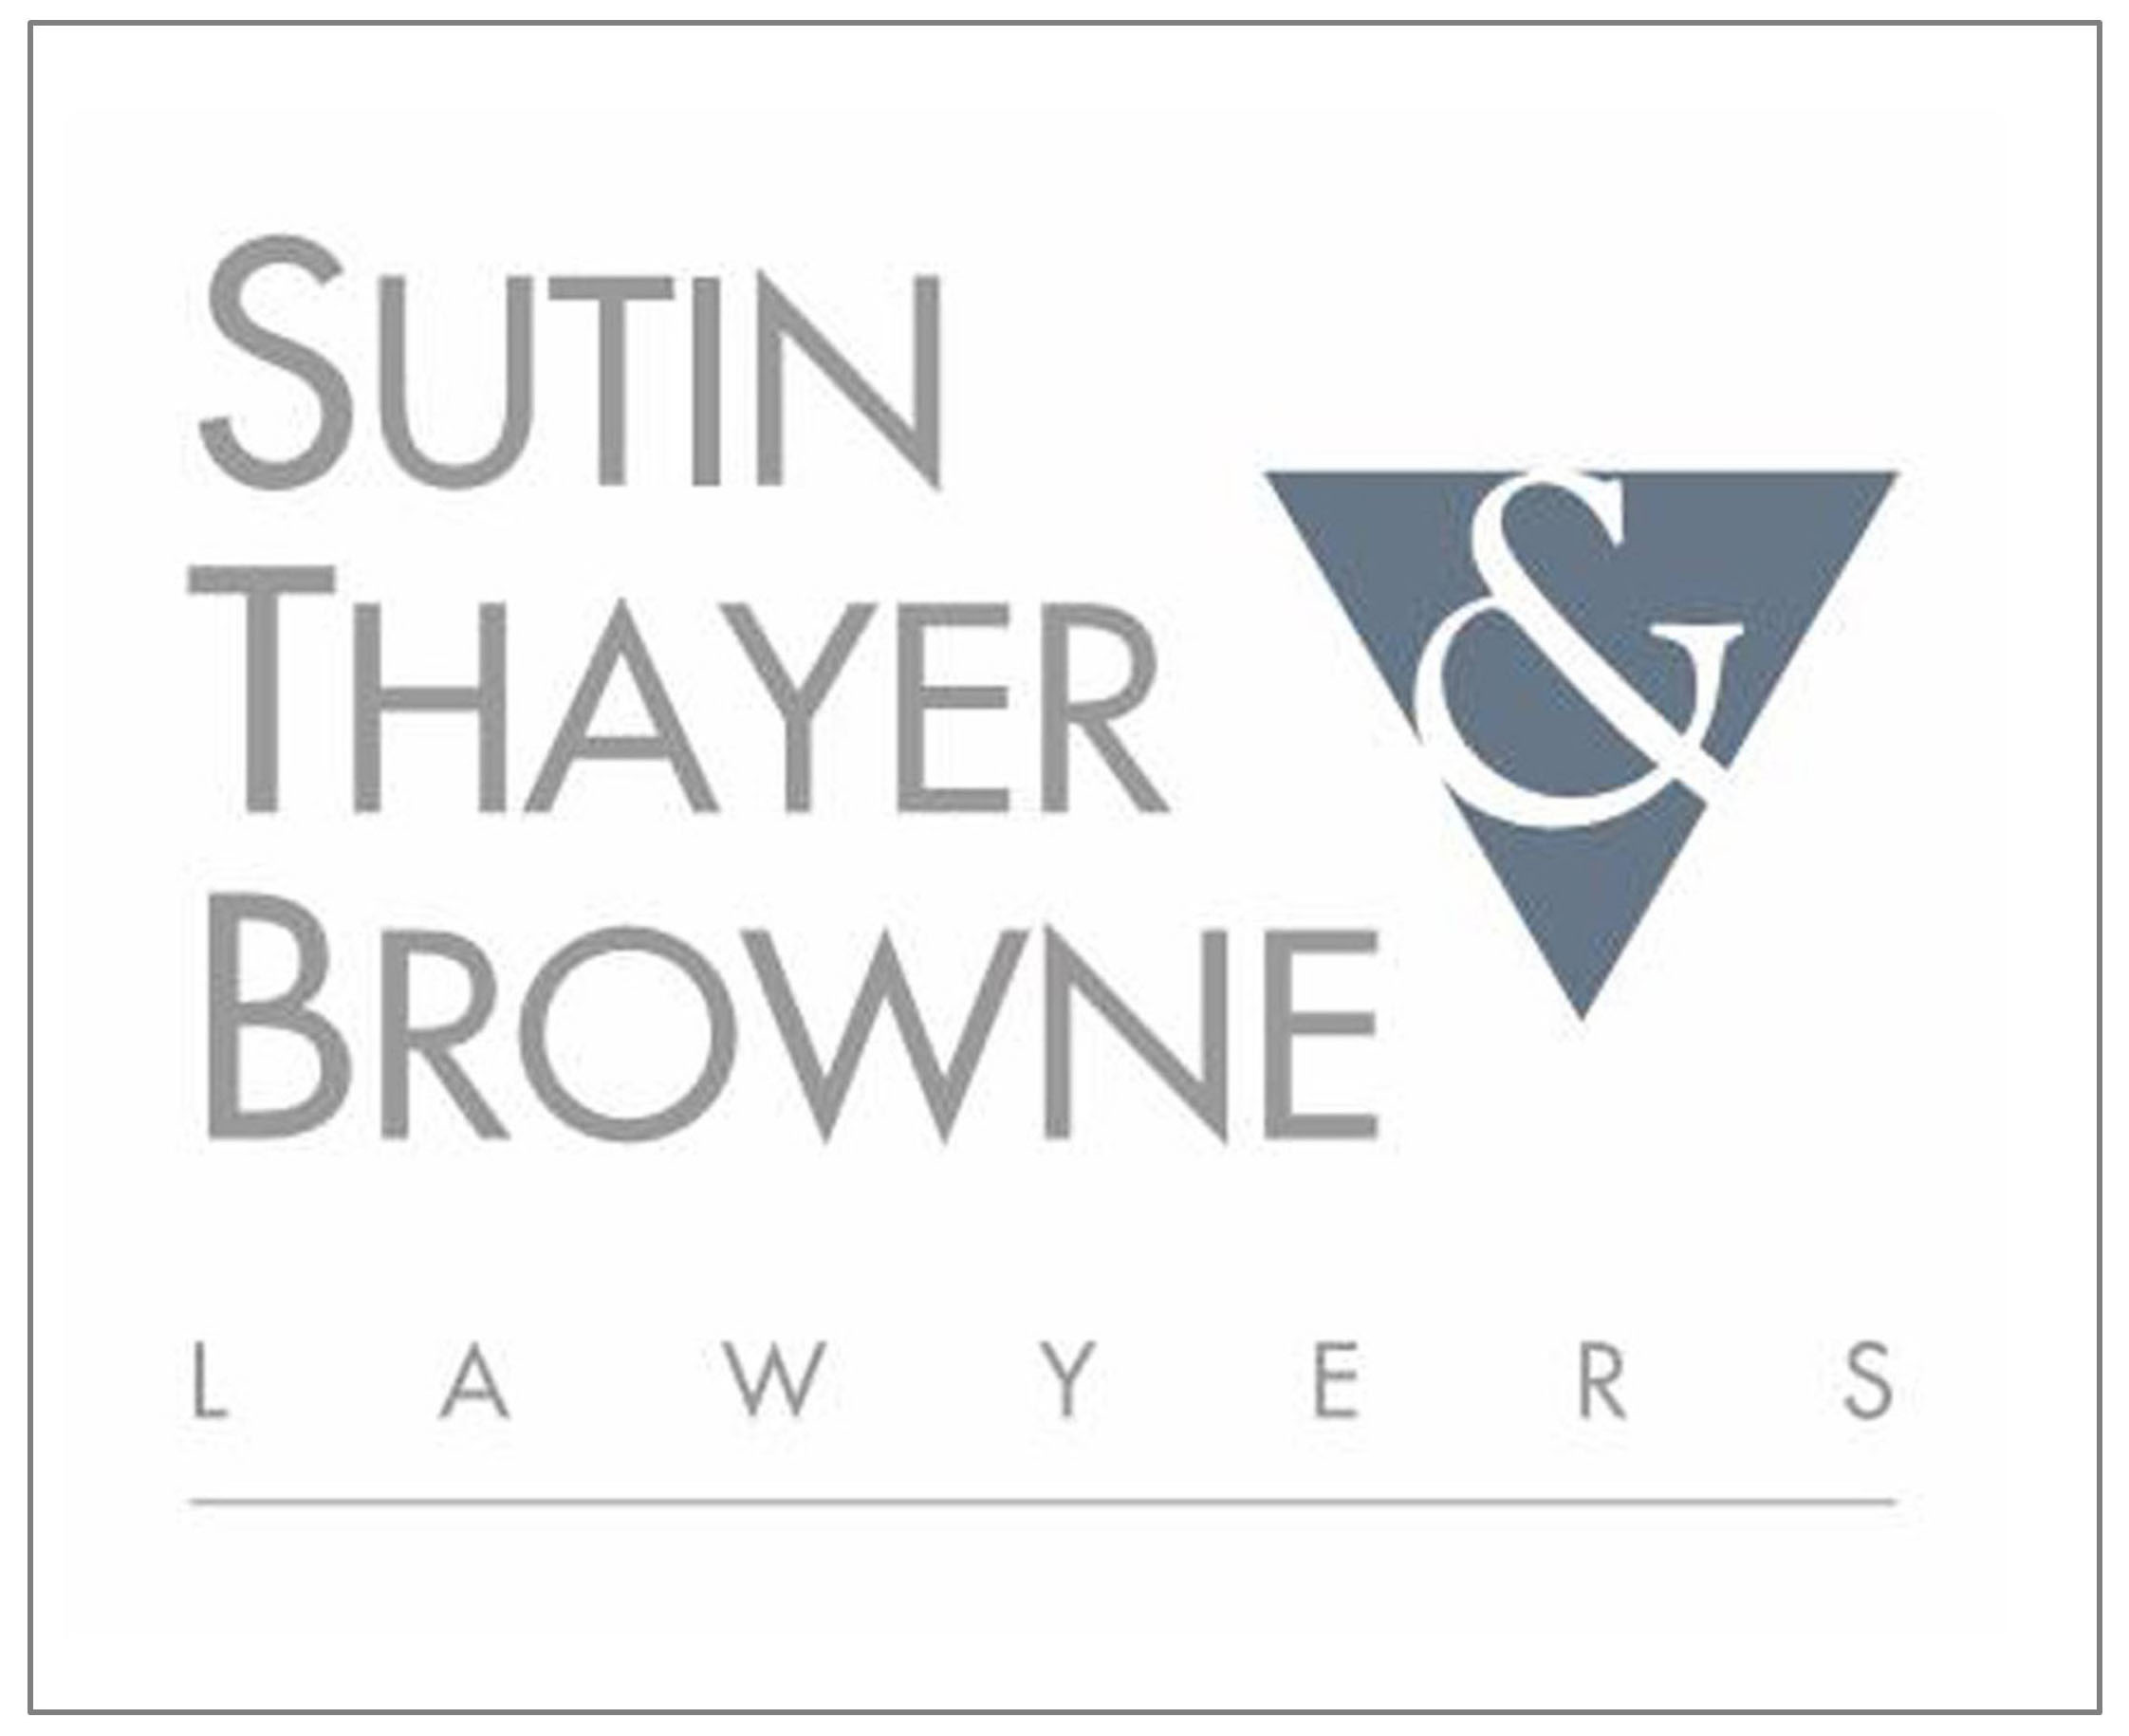 Thank you, Sutin, Thayer & Browne Lawyers!